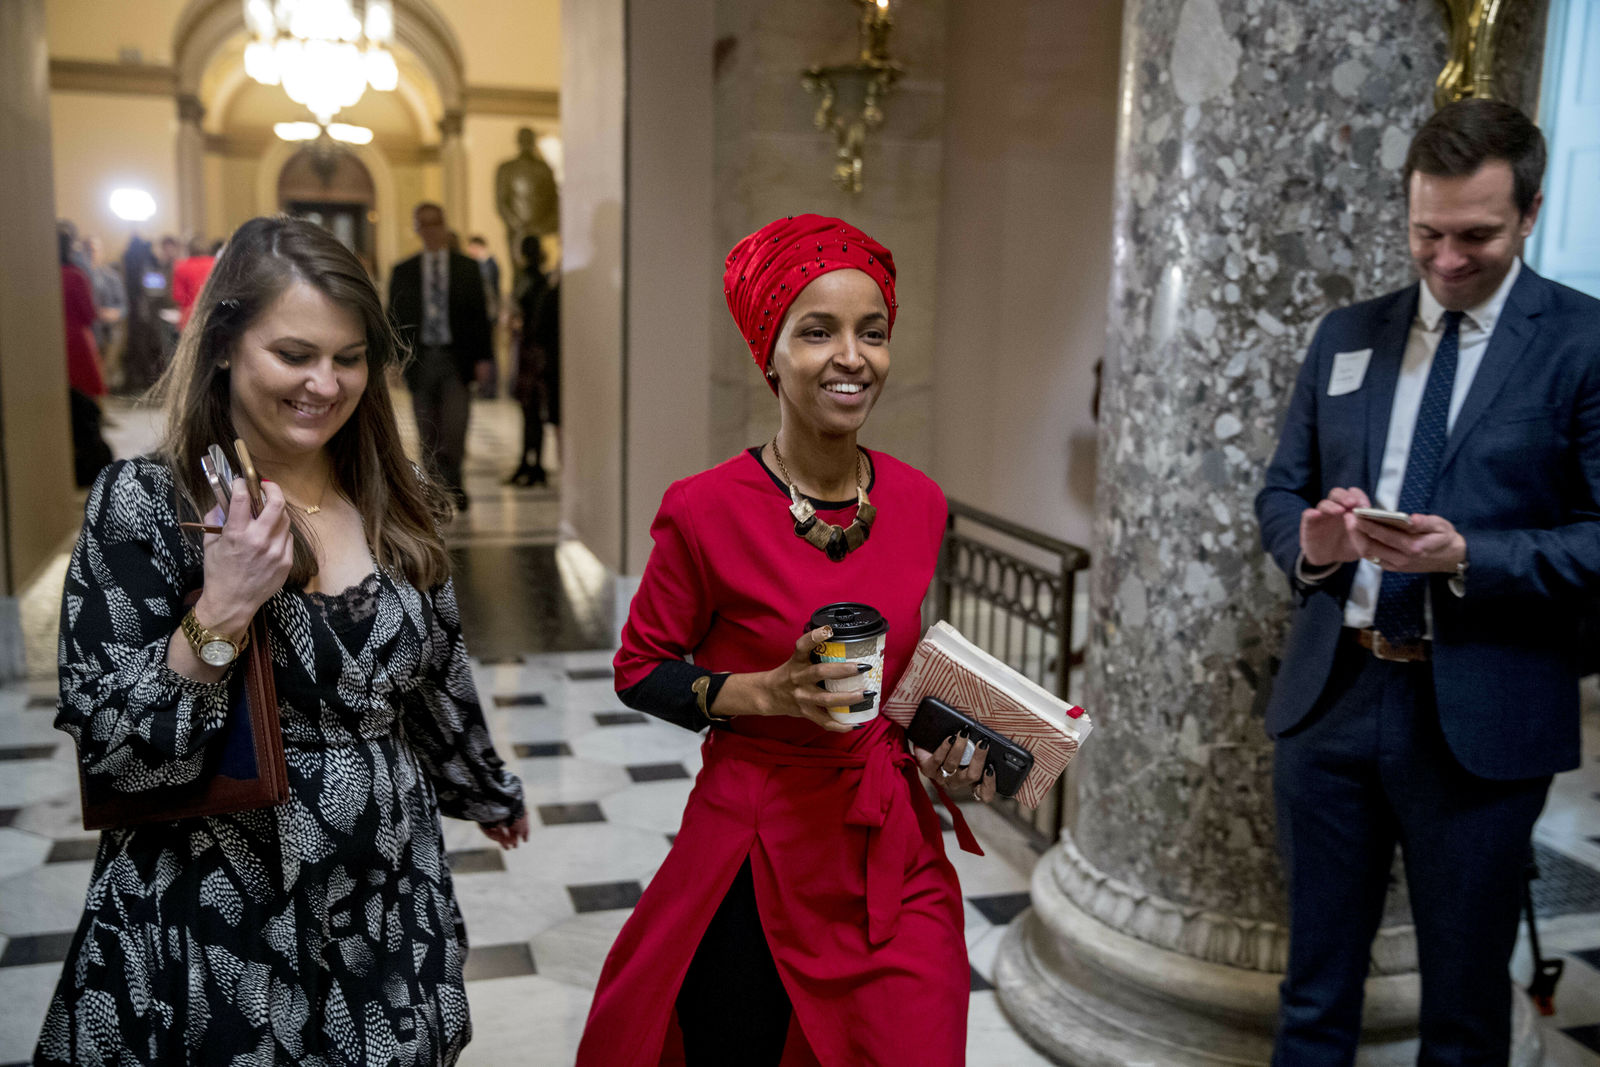 Rep. Ilhan Omar, D-Minn., center, walks through the halls of the Capitol Building in Washington, Wednesday, Jan. 16, 2019. (AP Photo/Andrew Harnik)